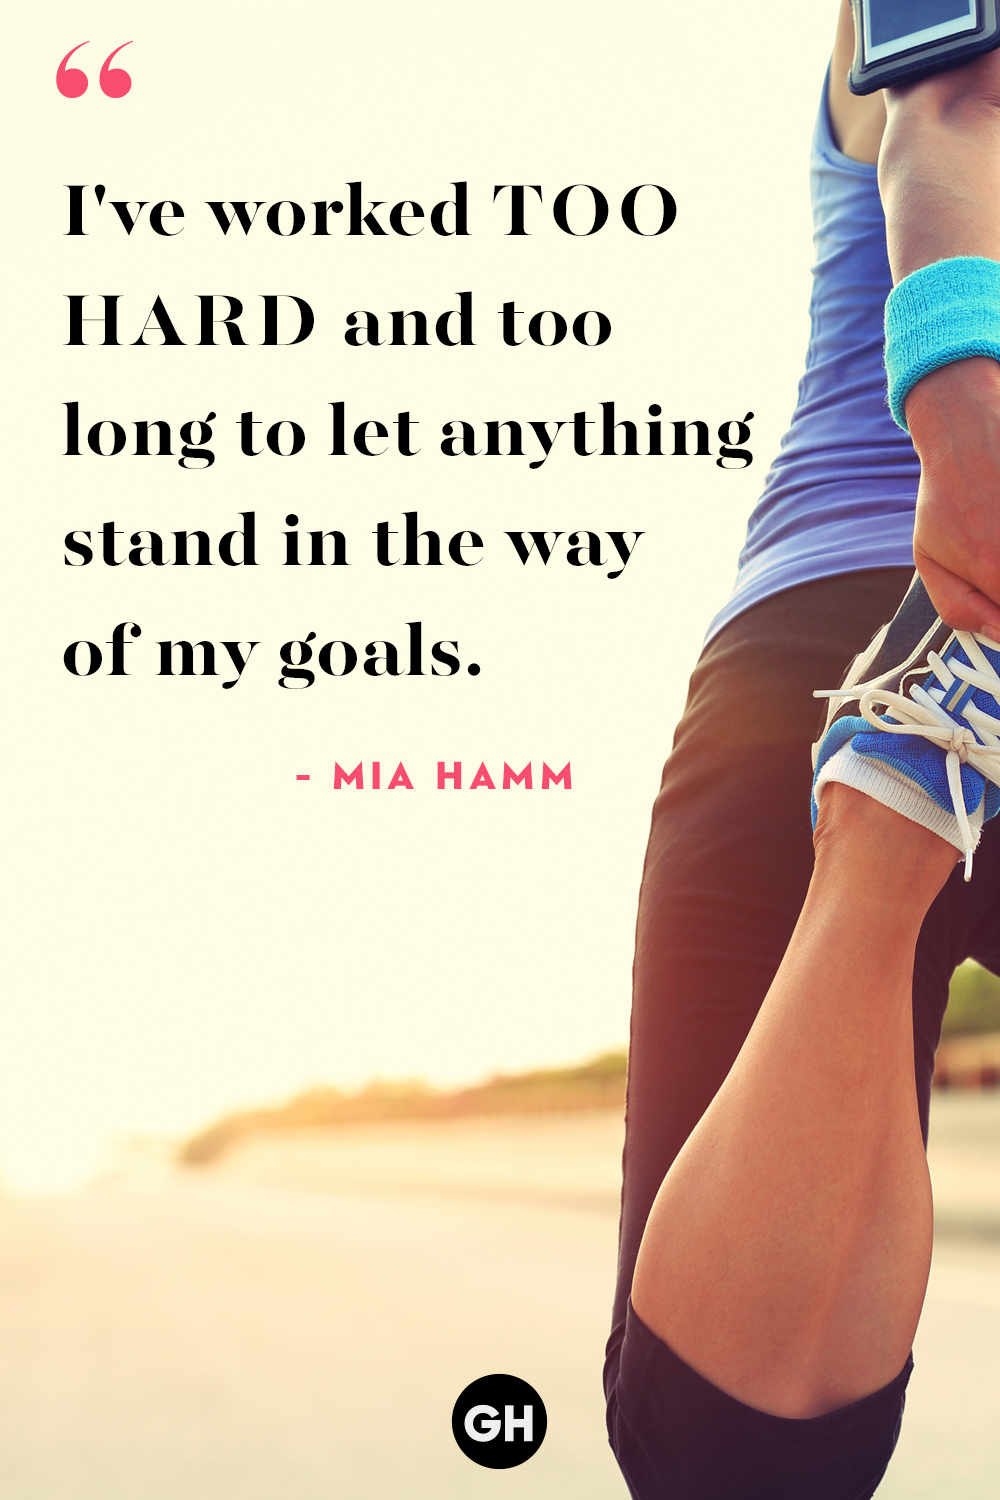 5 Best Diet Quotes - Motivational Quotes for Diet & Fitness Goals